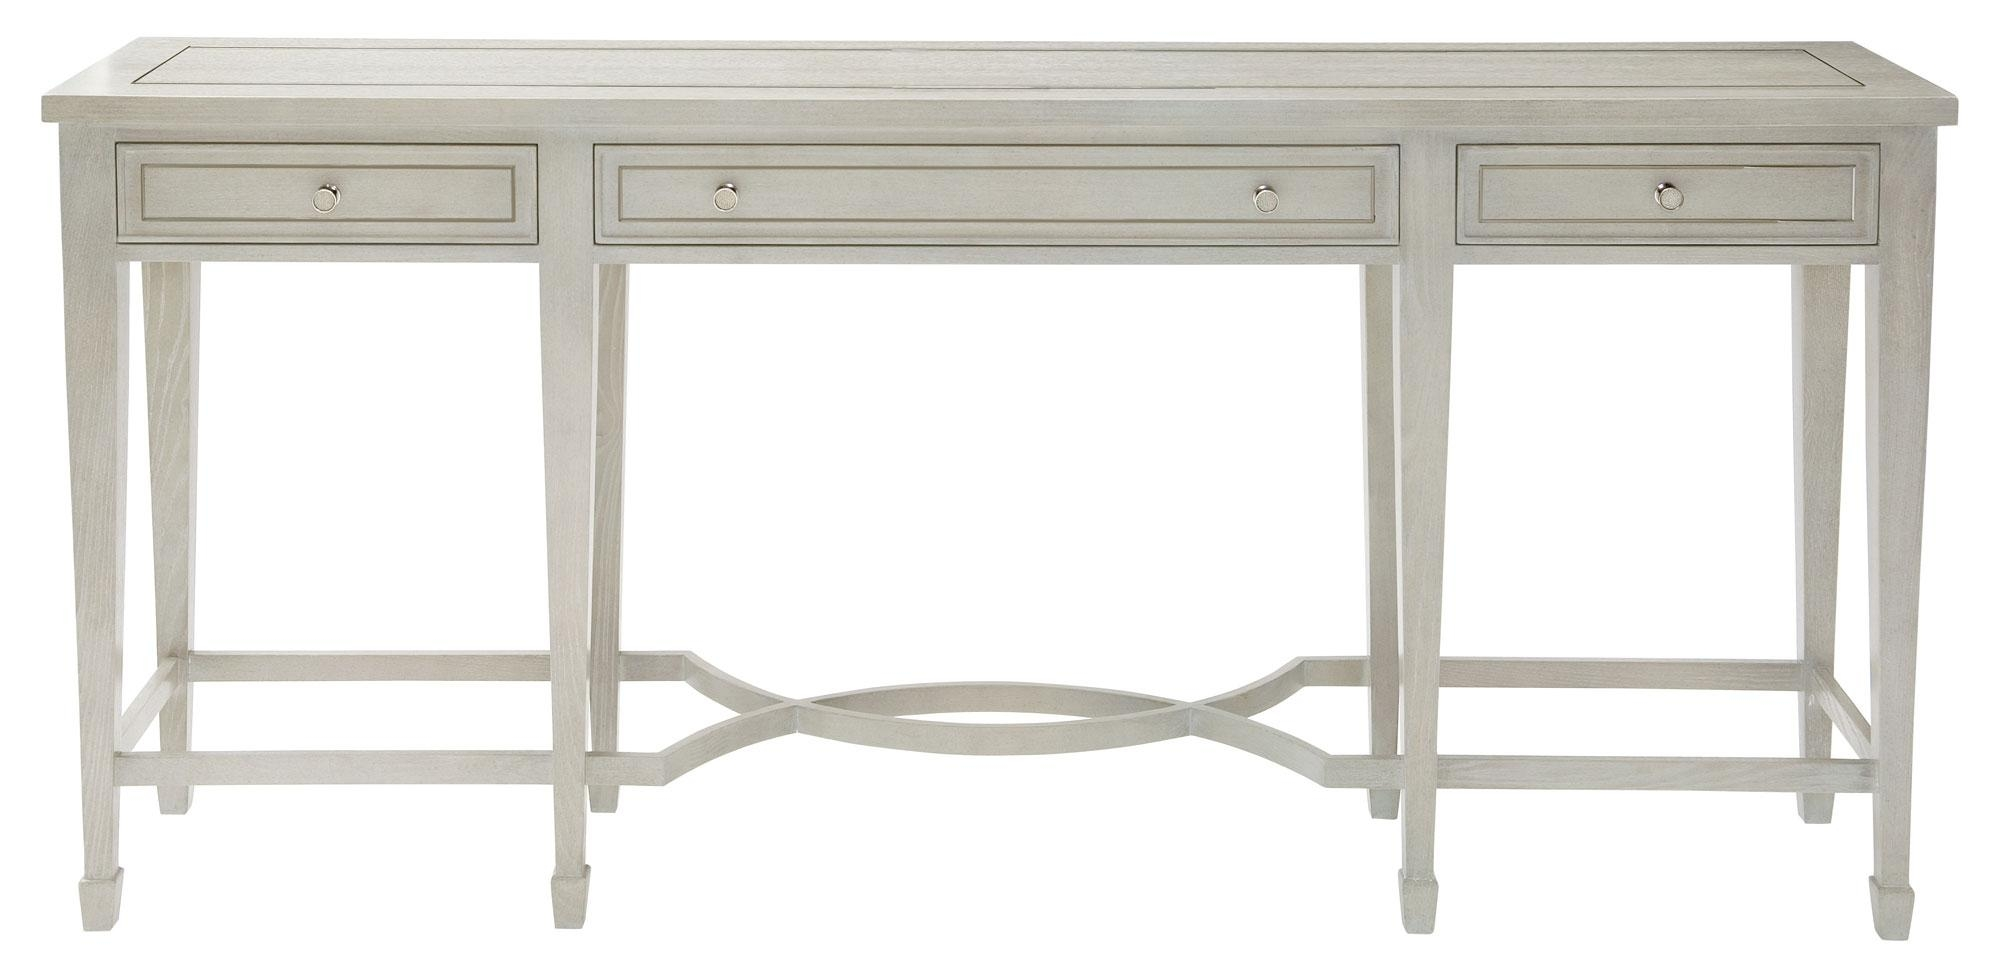 Console Table | Bernhardt Intended For Bernhardt Console Tables (View 3 of 20)